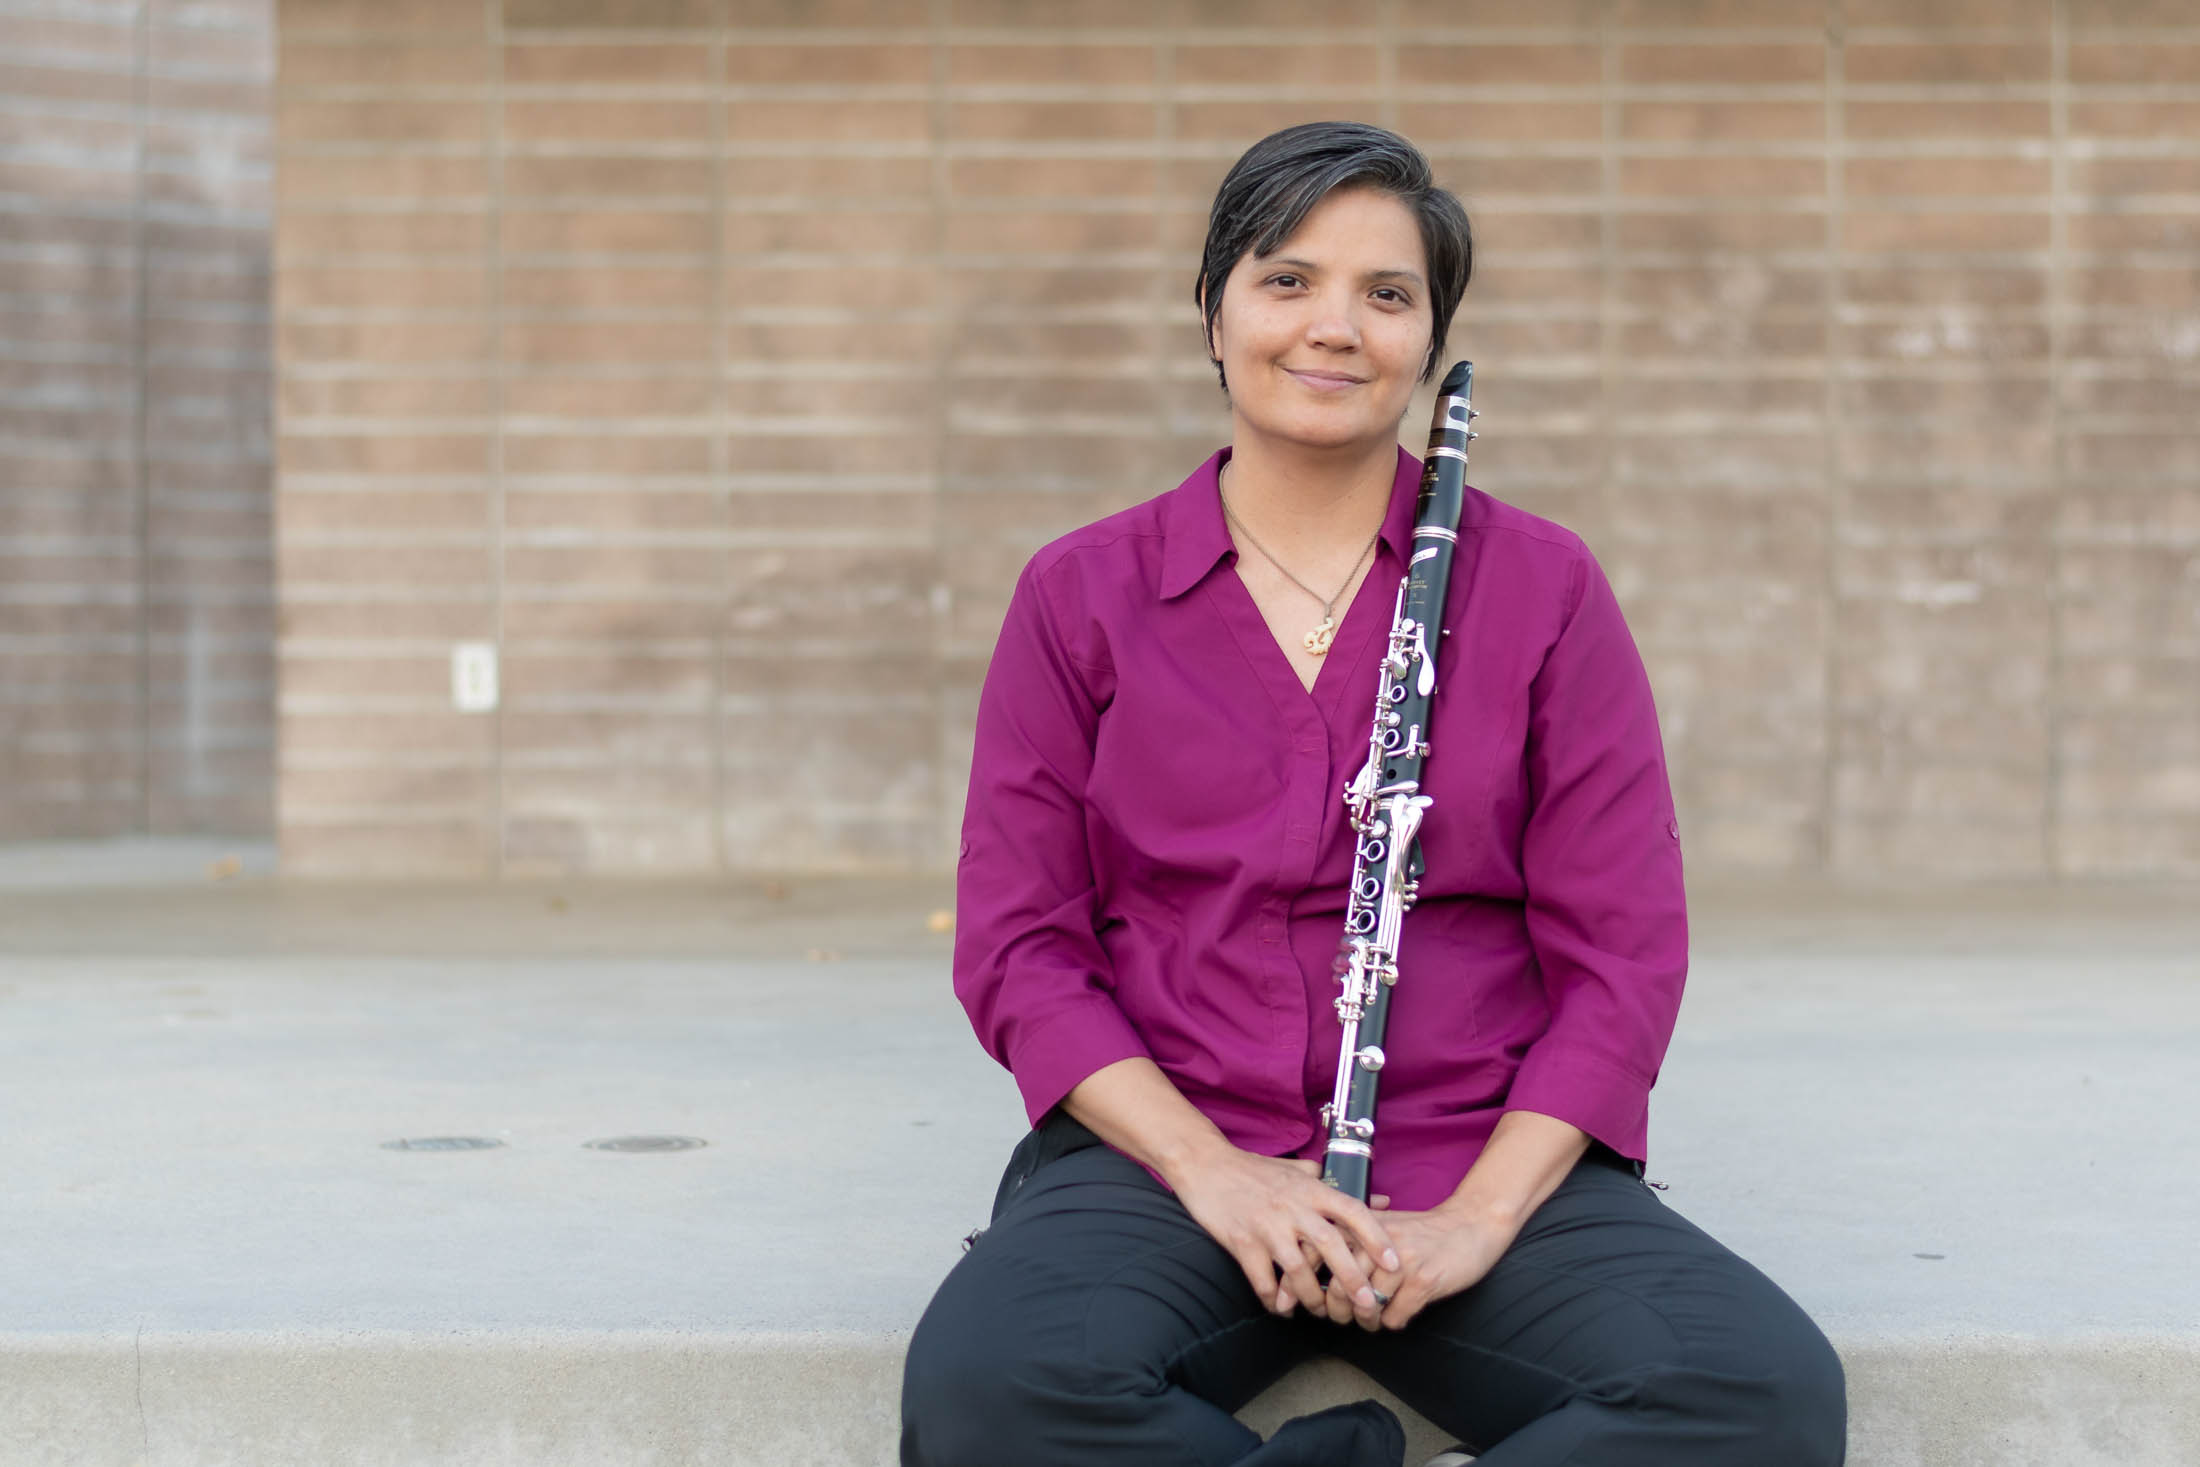 Woodwind artist changes the world with her clarinet